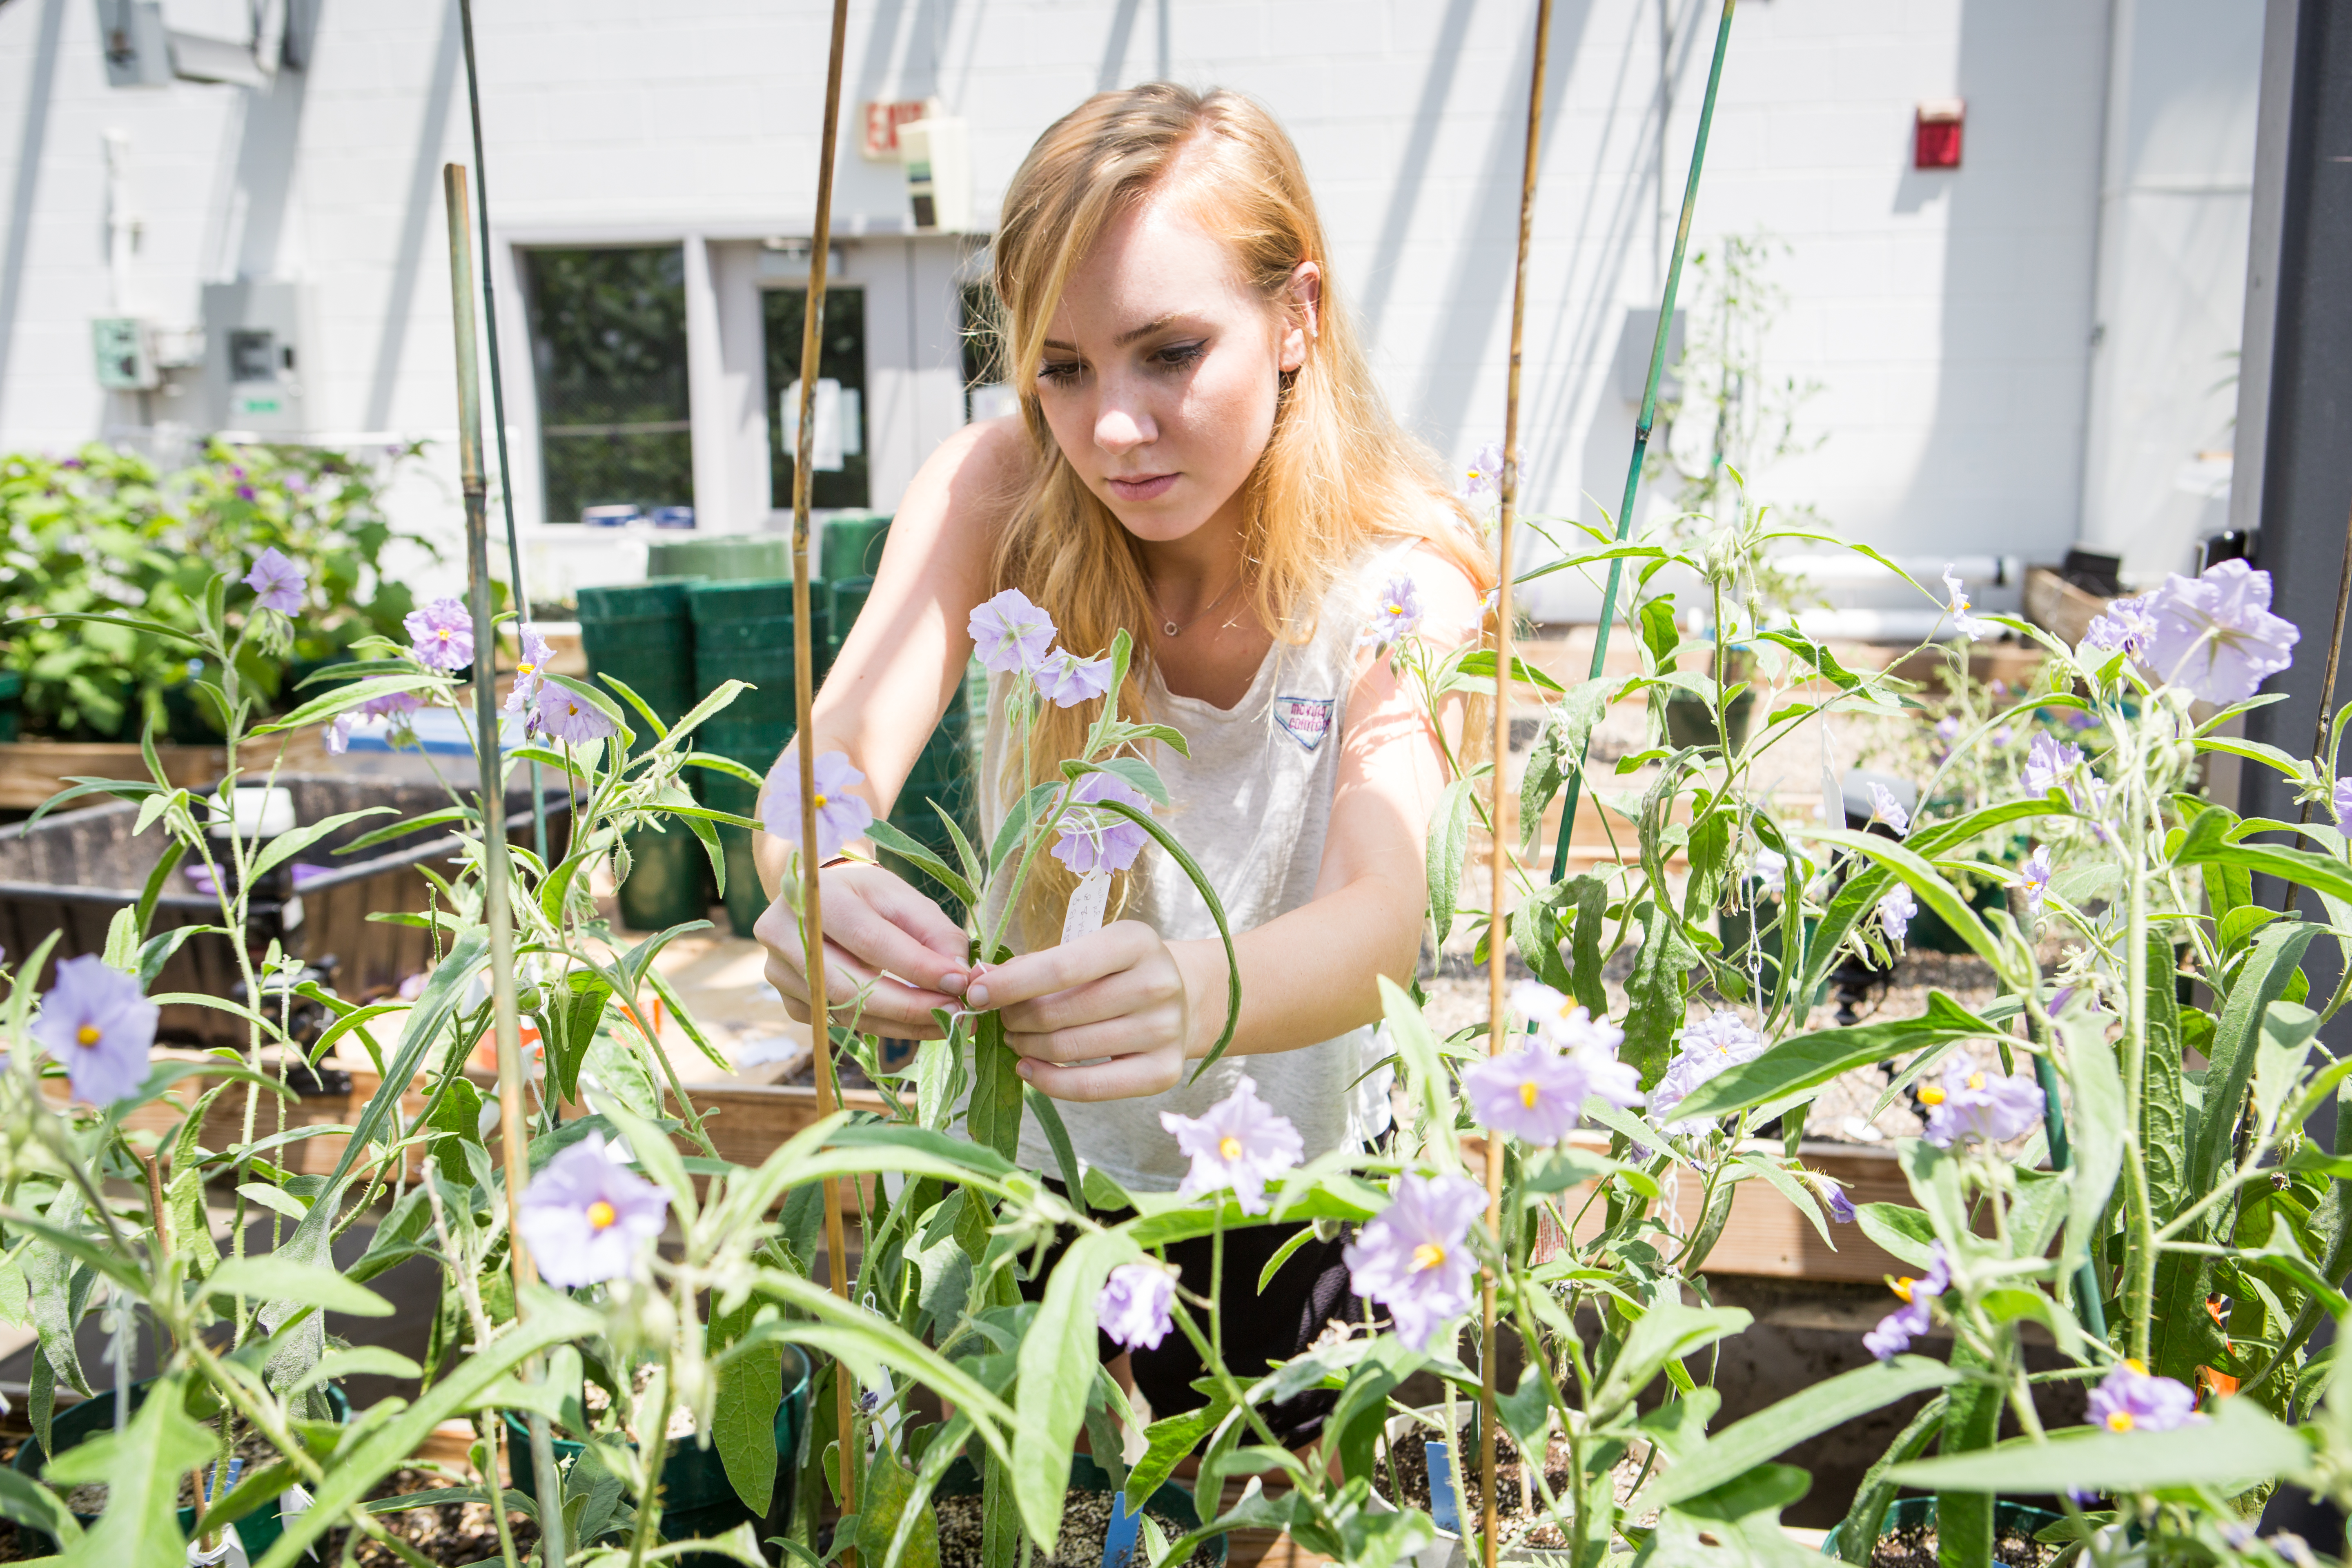 Emma Frawley, coauthor of the research paper in PhytoKeys, works on the new species of plants in a greenhouse.